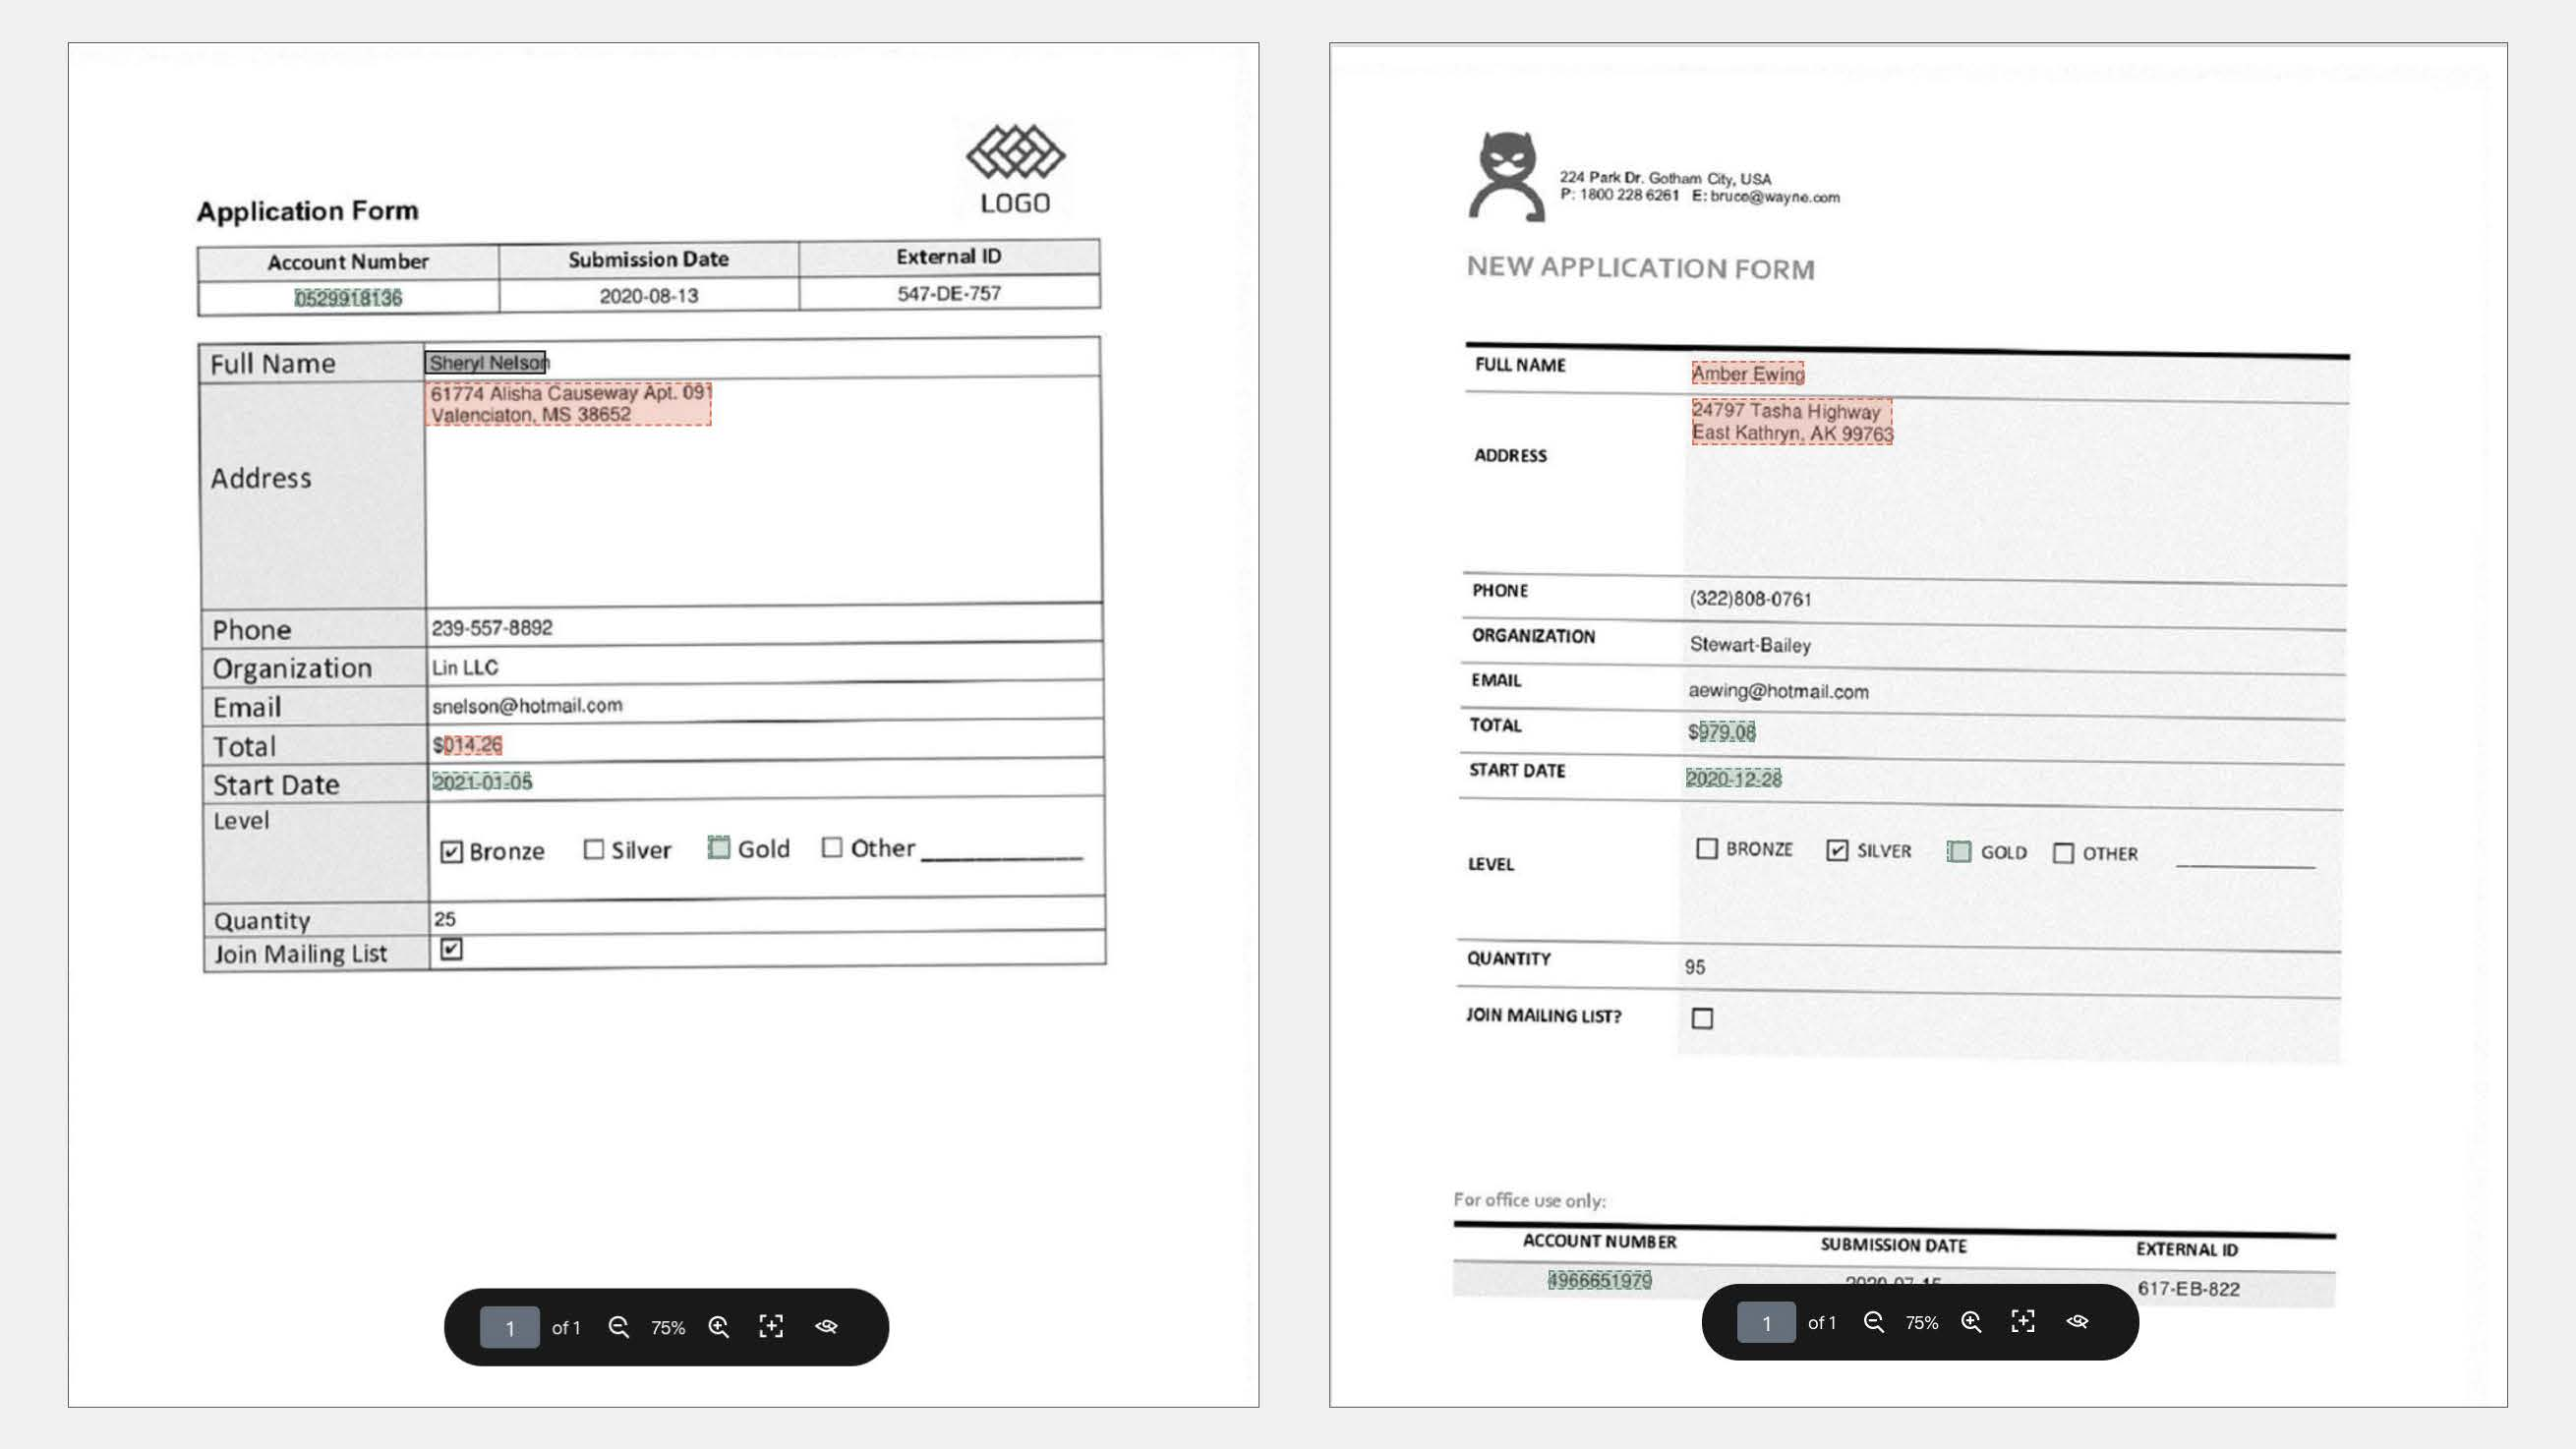 Two different documents with the same schema and different physical layouts